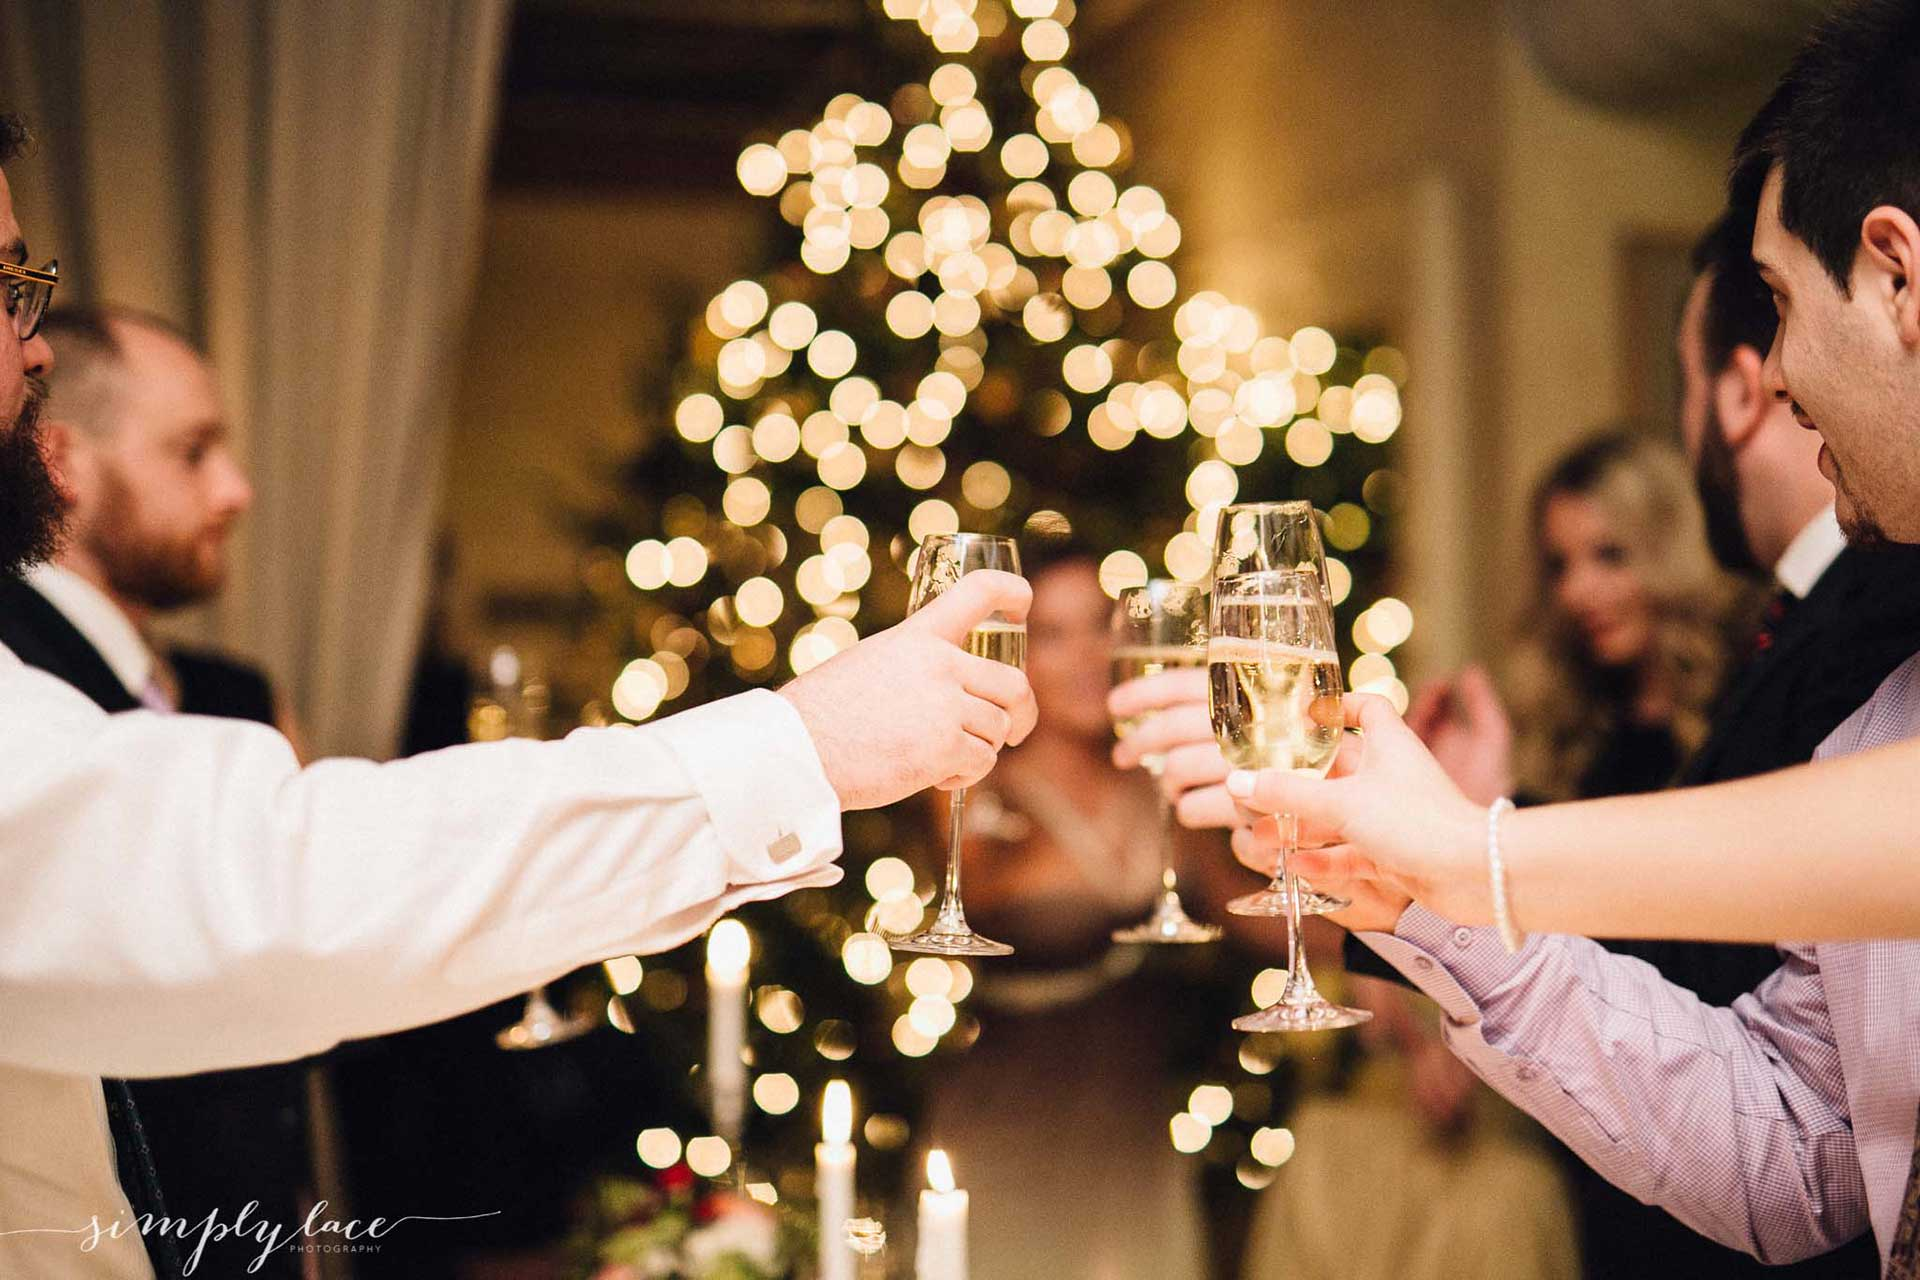 Unique Wedding Venues Toronto - Welcome Drinks with Guests